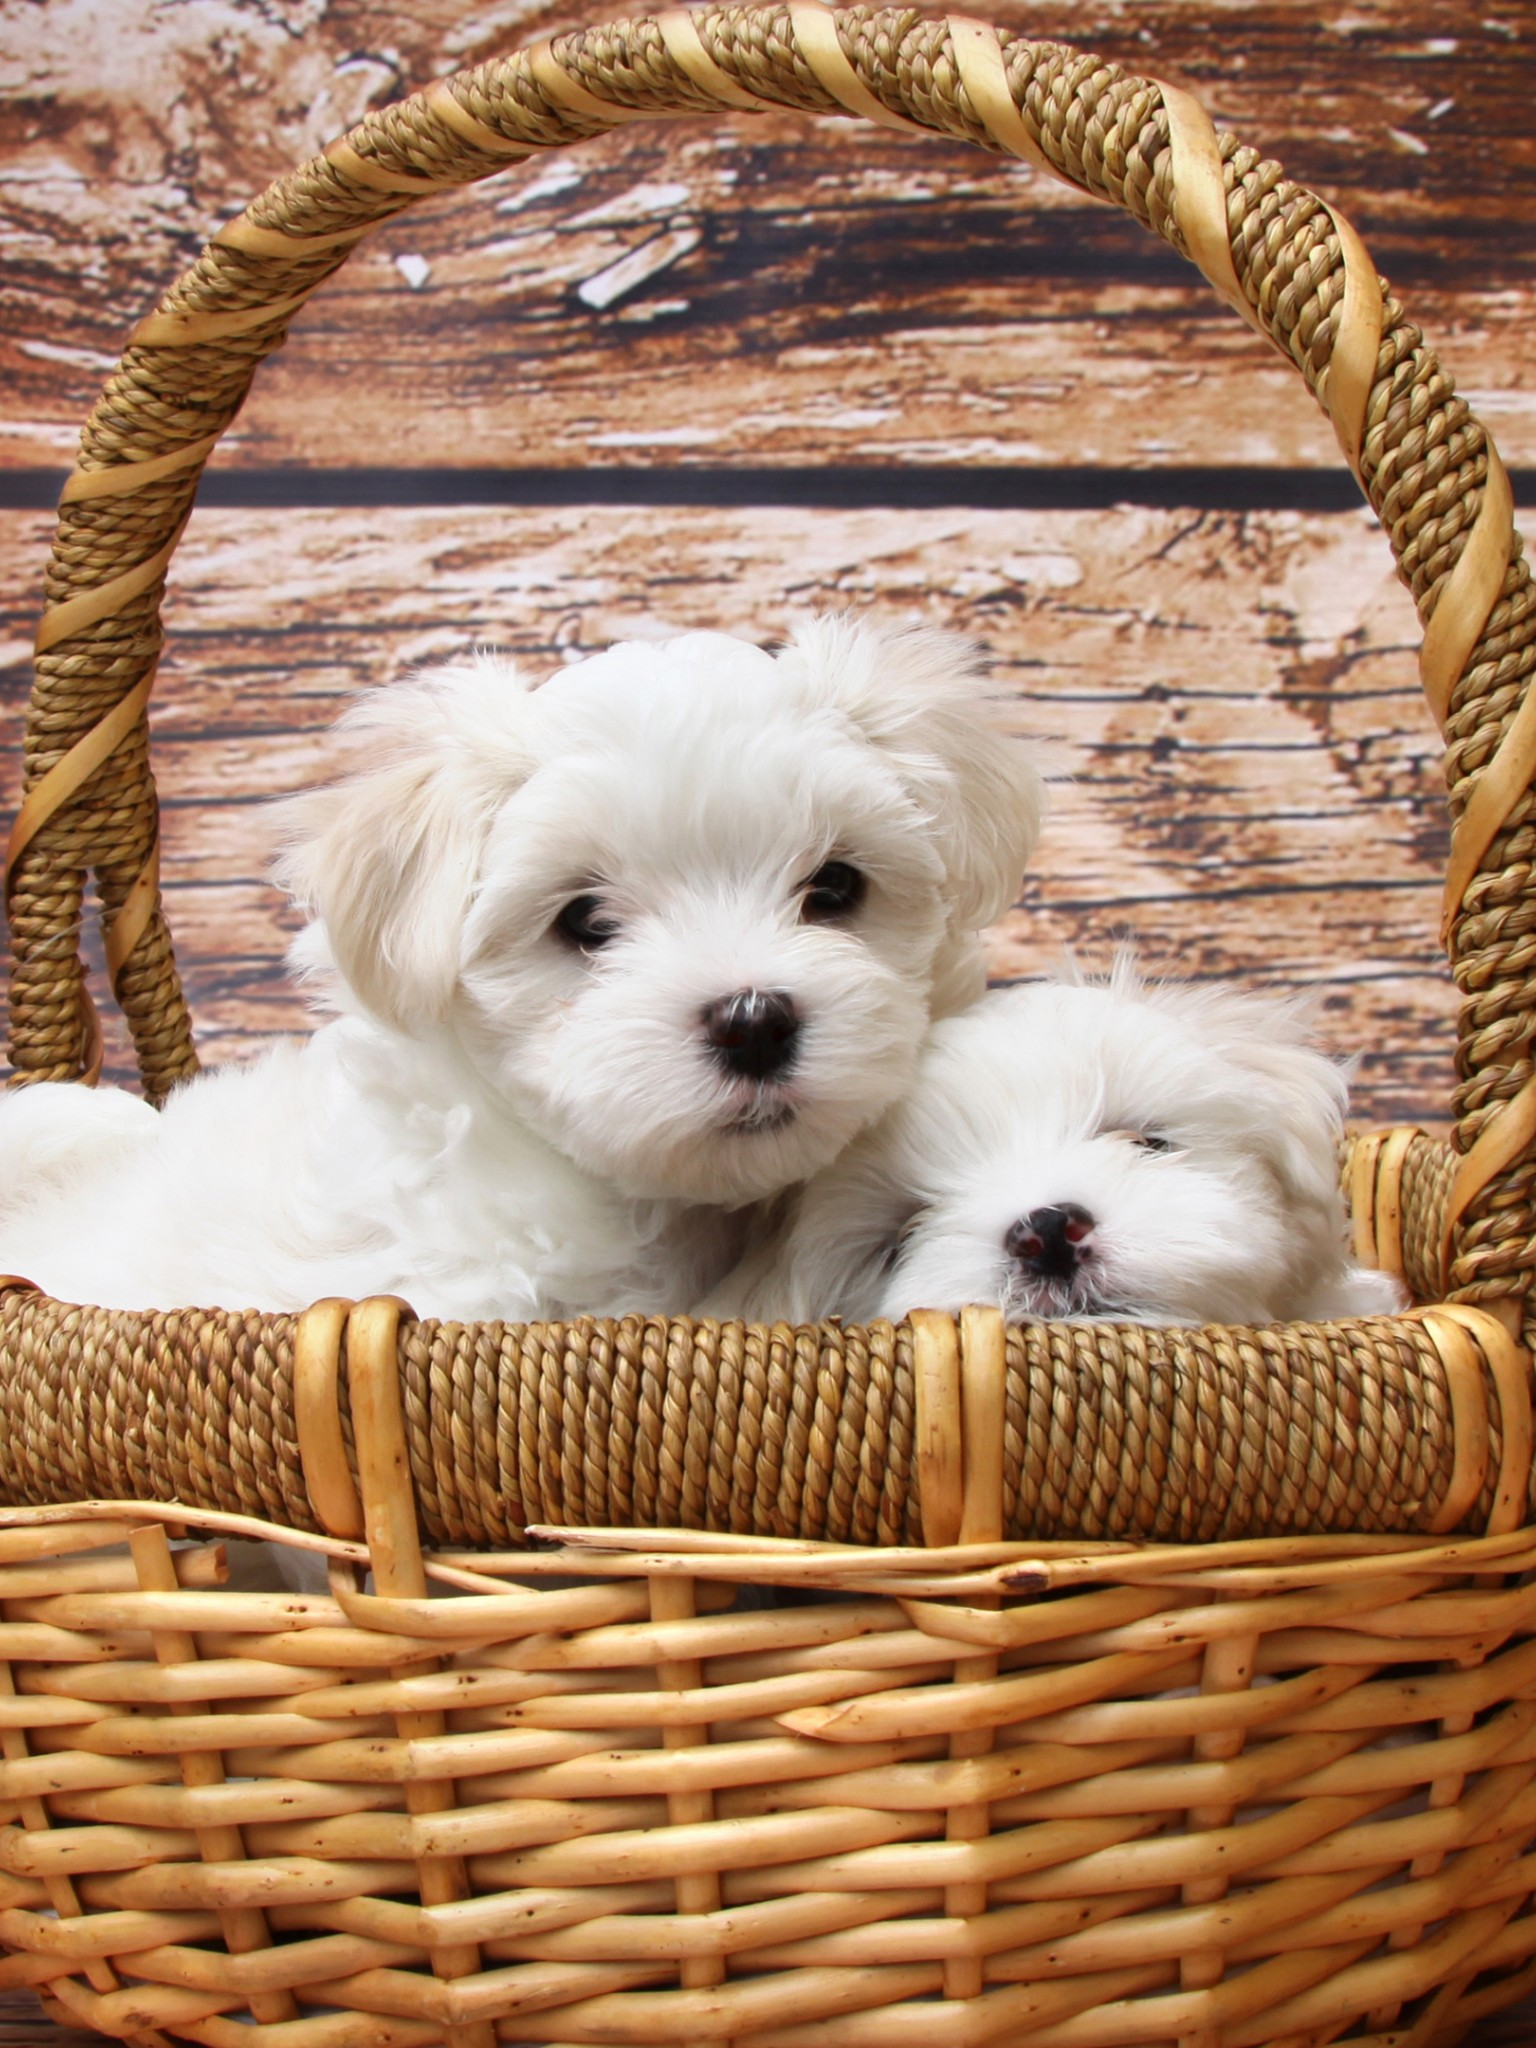 Maltese Cute Dog Puppy Wallpapers For Desktop And Mobiles Retina Ipad Hd Wallpaper Wallpapers Net